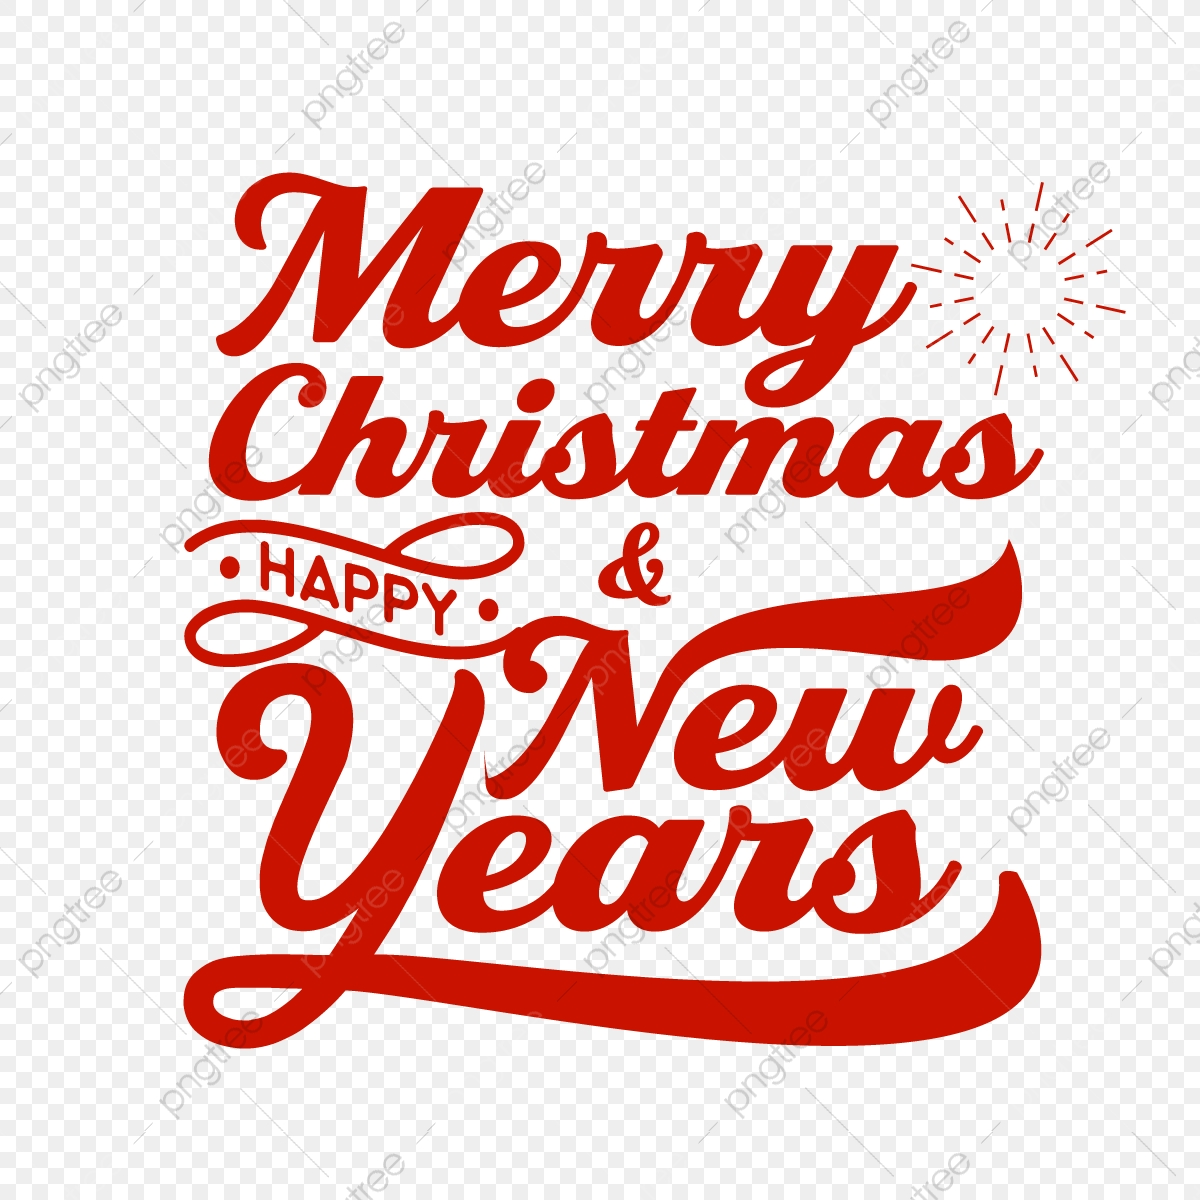 Typography Of Merry Christmas And Happy New Years Greeting Card Typography Png And Vector With Transparent Background For Free Download